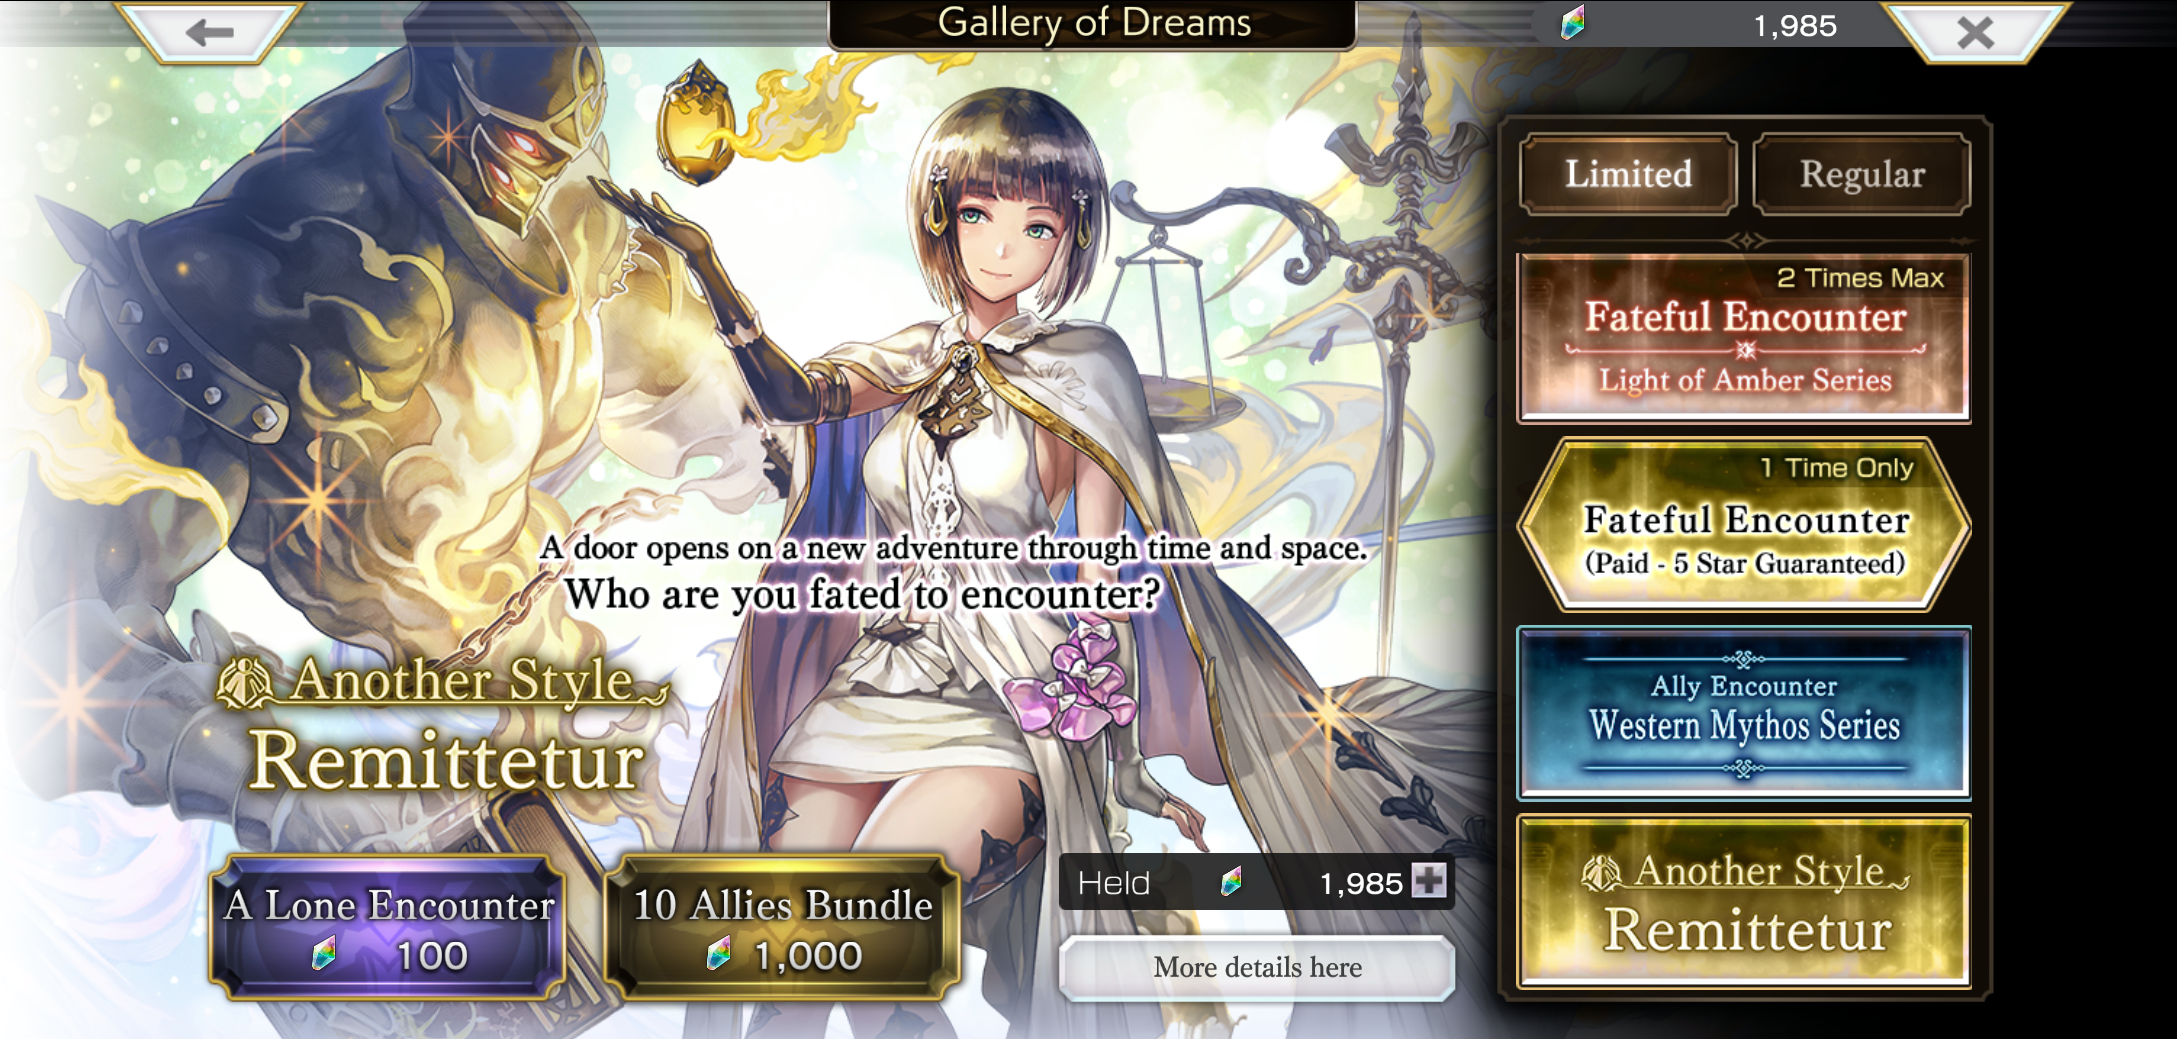 A screenshot of one of the banners you can pull characters from.